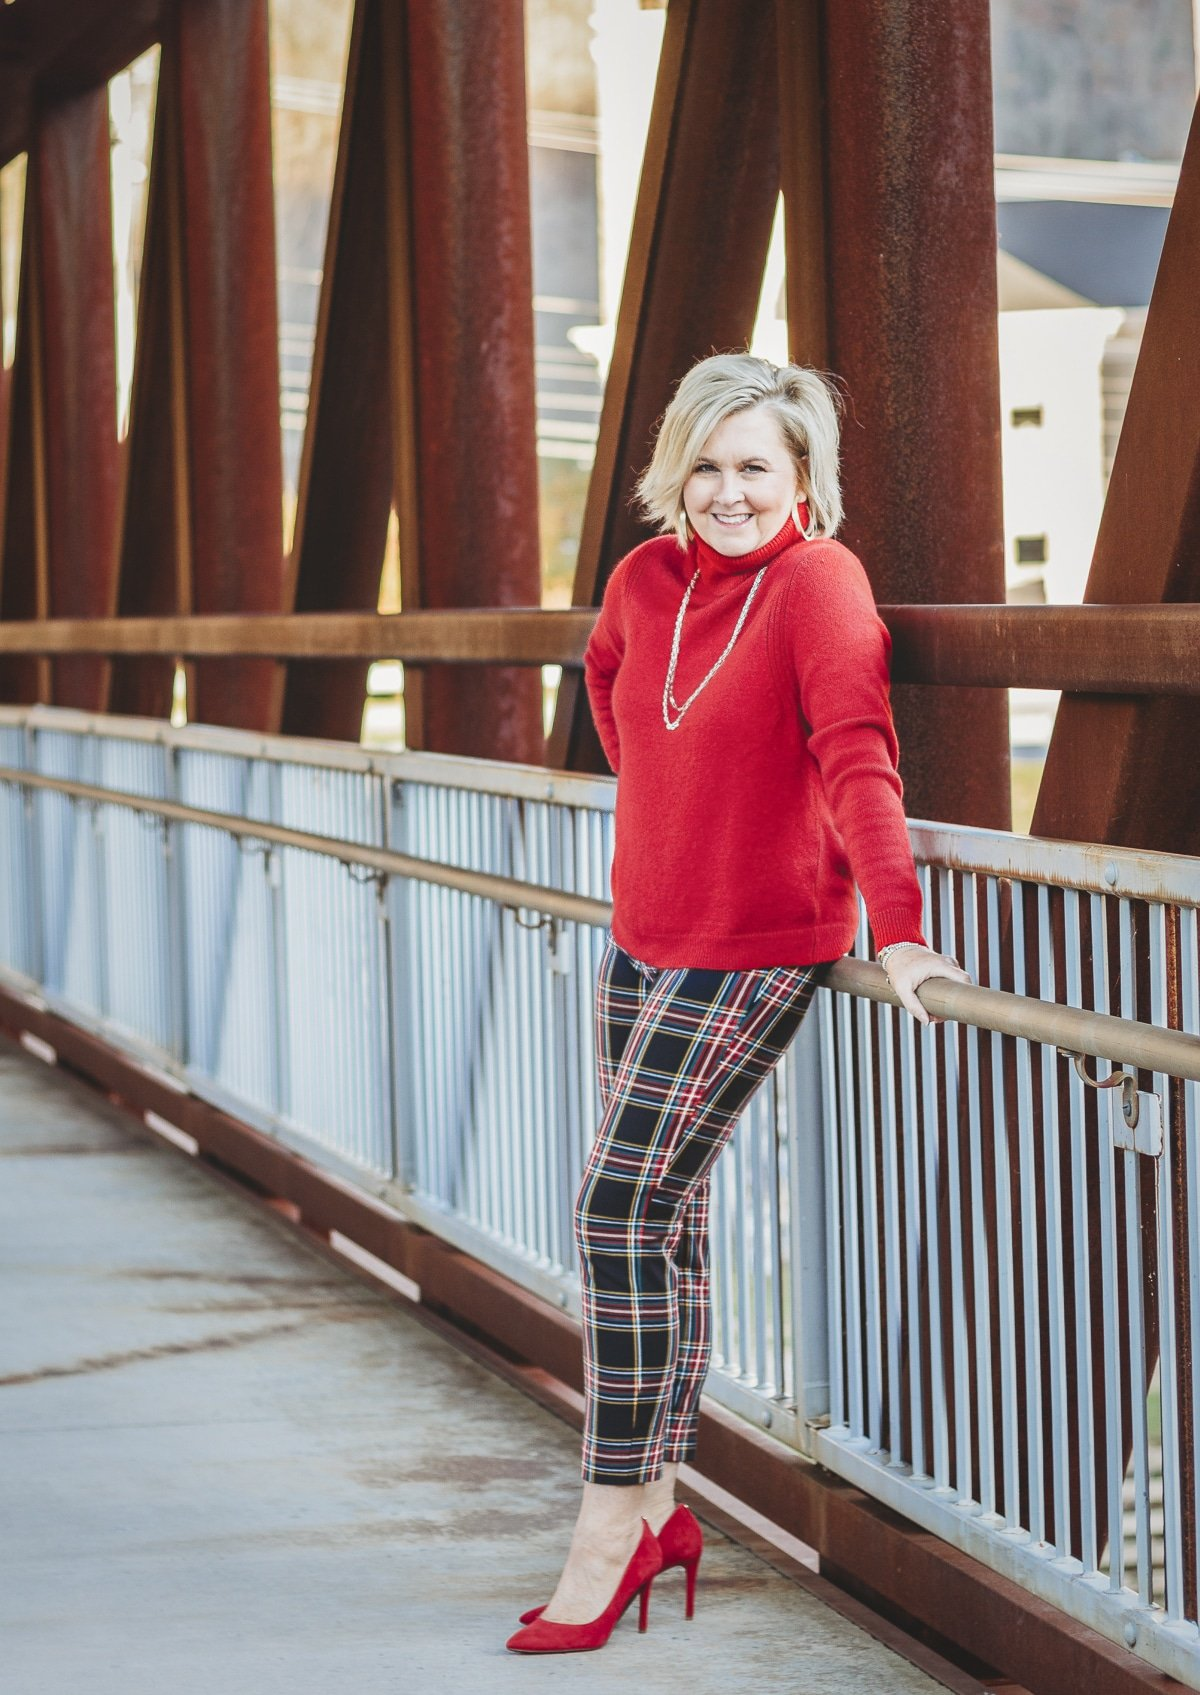 Fashion Blogger 50 Is Not Old is looking festive in this red turtleneck sweater and plaid pants with red heels